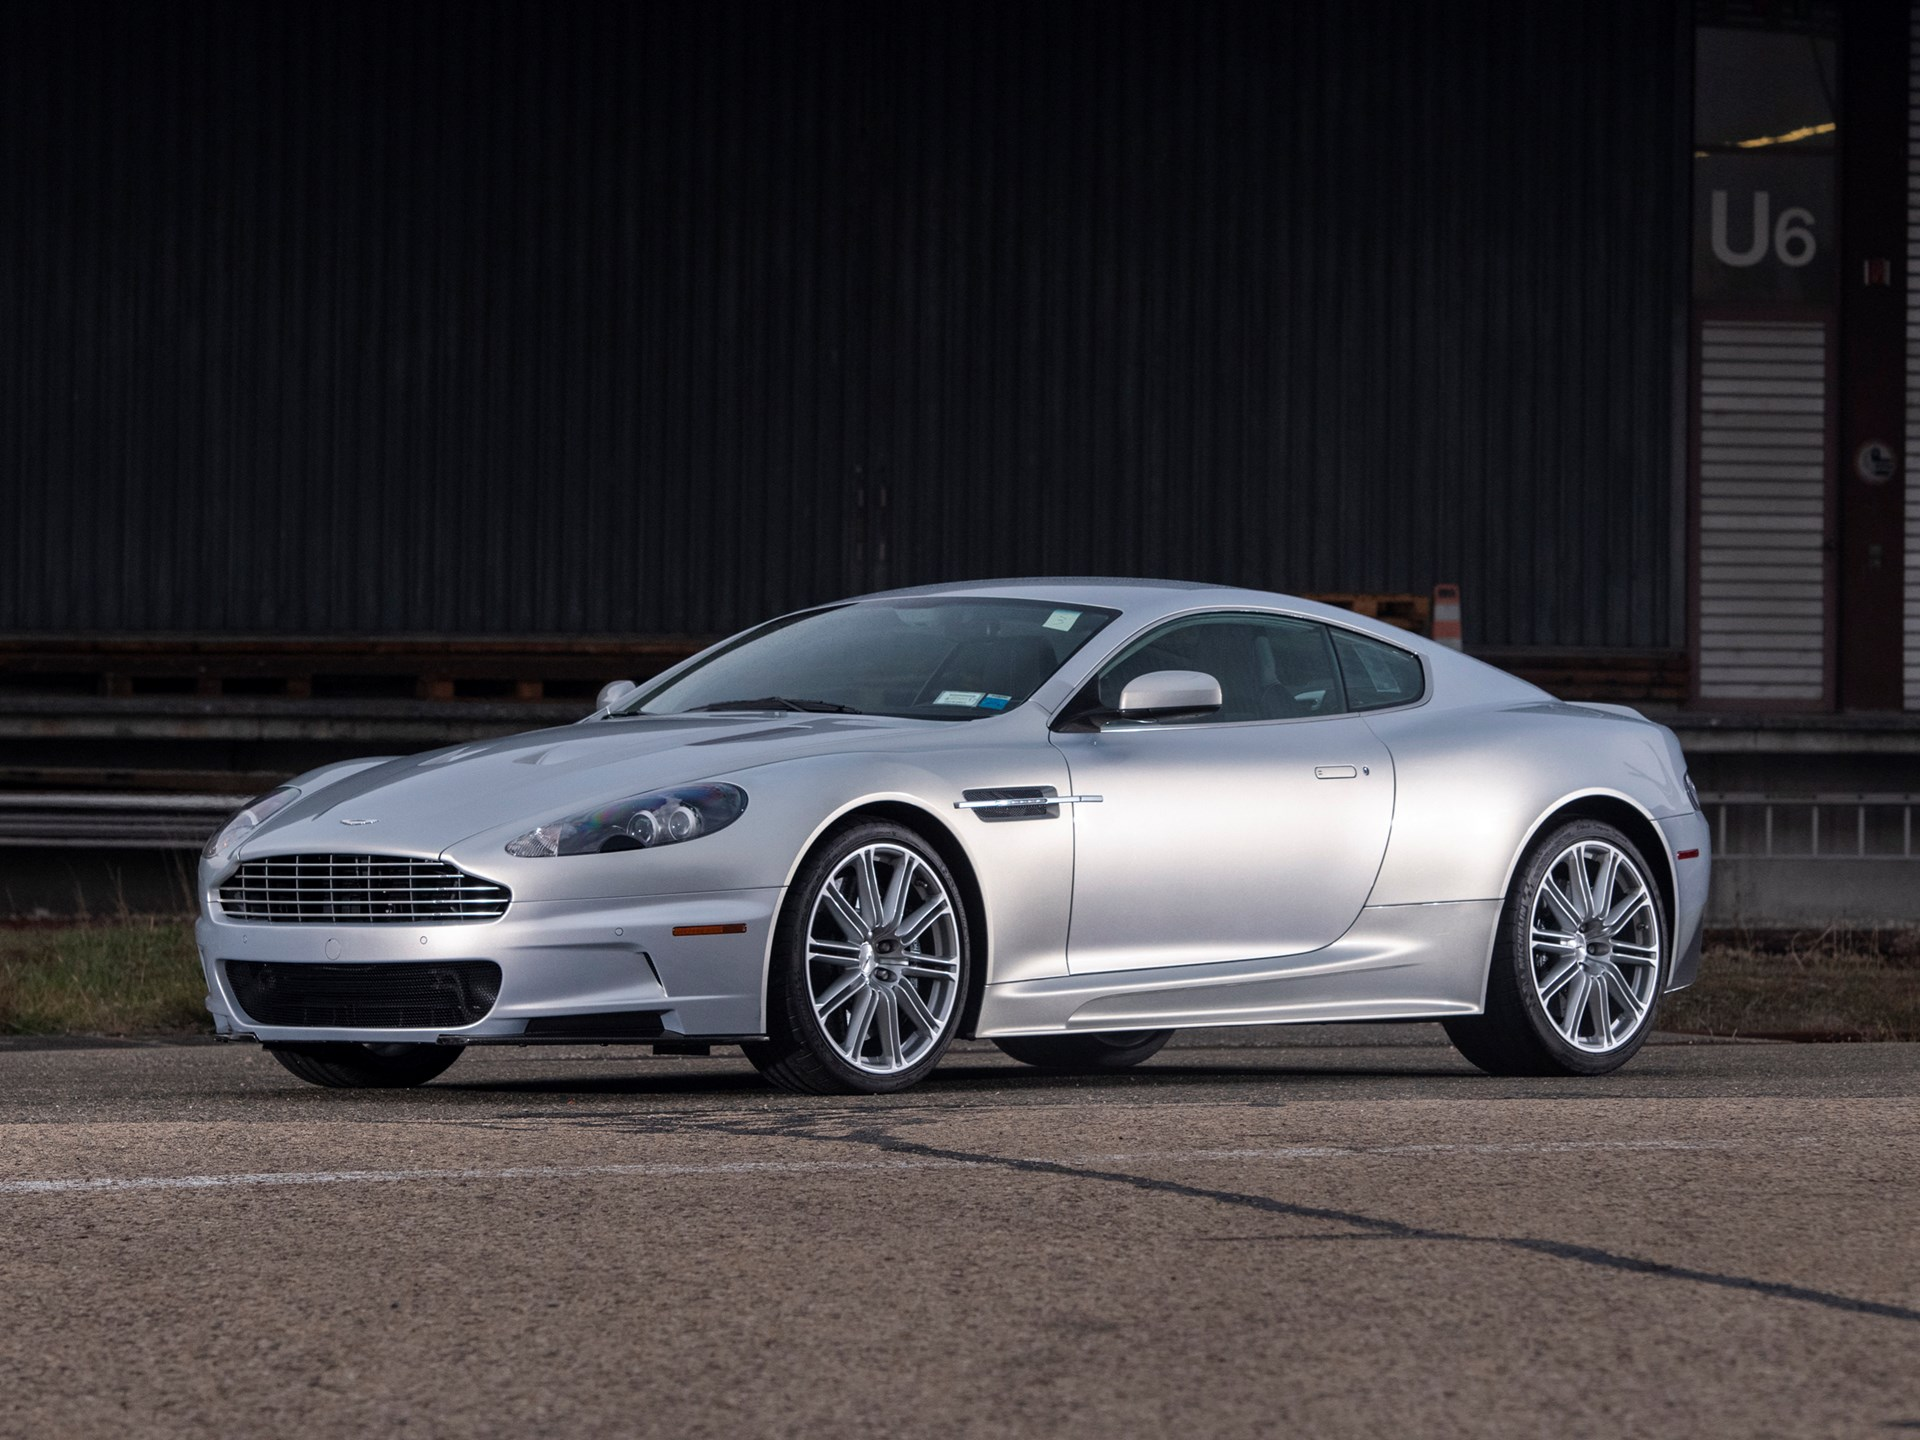 rm sotheby's - 2009 aston martin dbs | fort lauderdale 2019